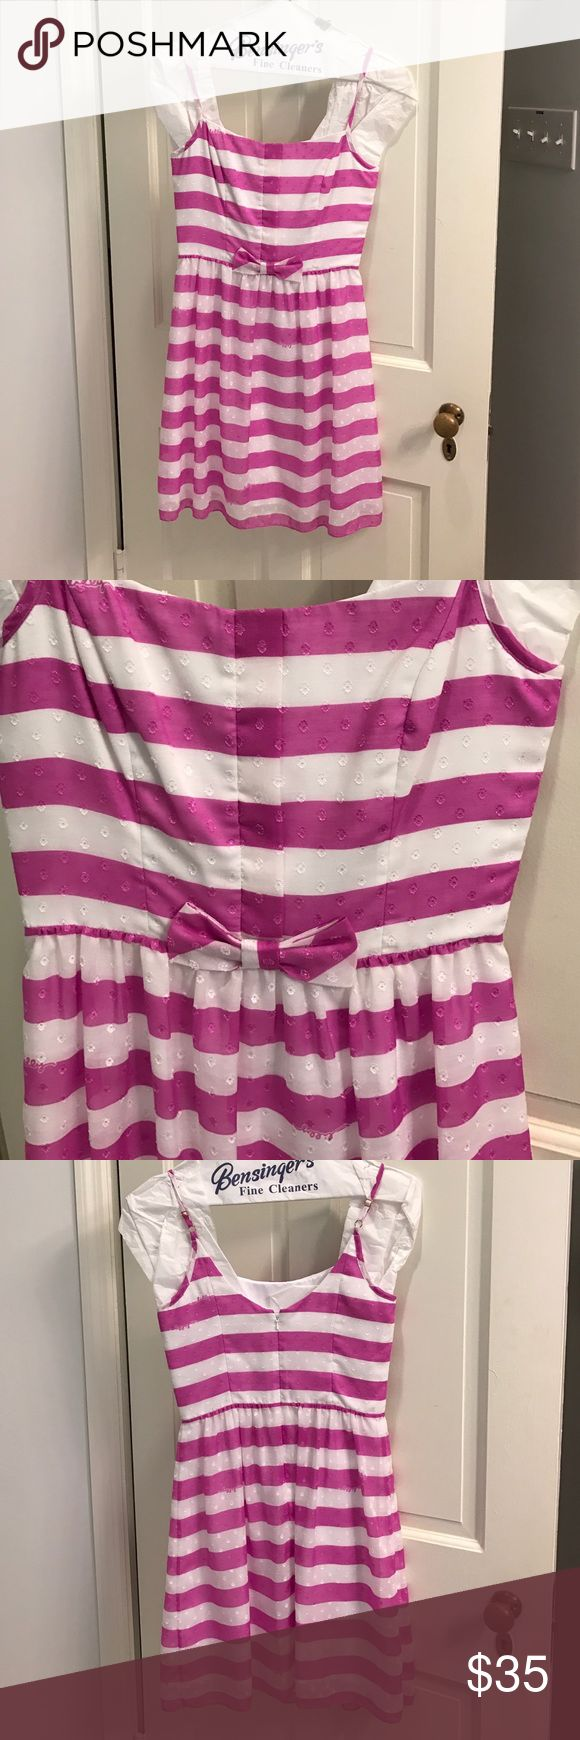 Lilly Pulitzer striped fuchsia/white dress size 2 Spaghetti strap Lilly Pulitzer sundress with fuchsia and white stripes. Size 2. Straps are adjustable. Bow detail on front waistband. Worn once and dry cleaned! Let me know if you have any questions! Lilly Pulitzer Dresses